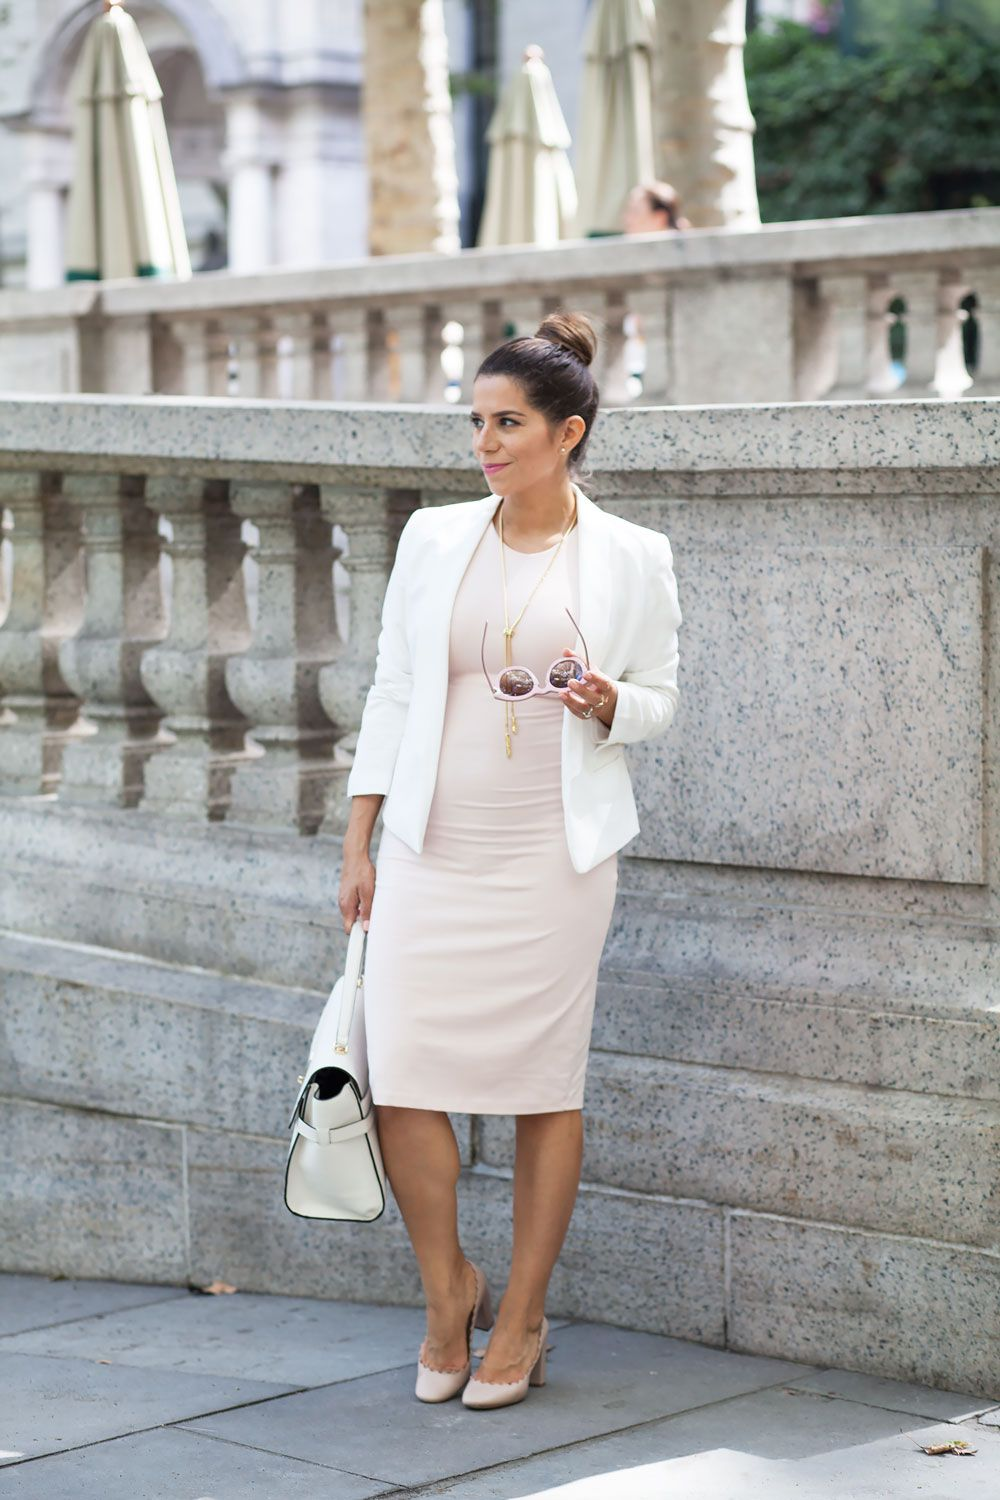 How To Dress For Work When You Are Pregnant Olivia Jeanette Office Fashion Women Business Casual Dresses Fashion [ 1500 x 1000 Pixel ]